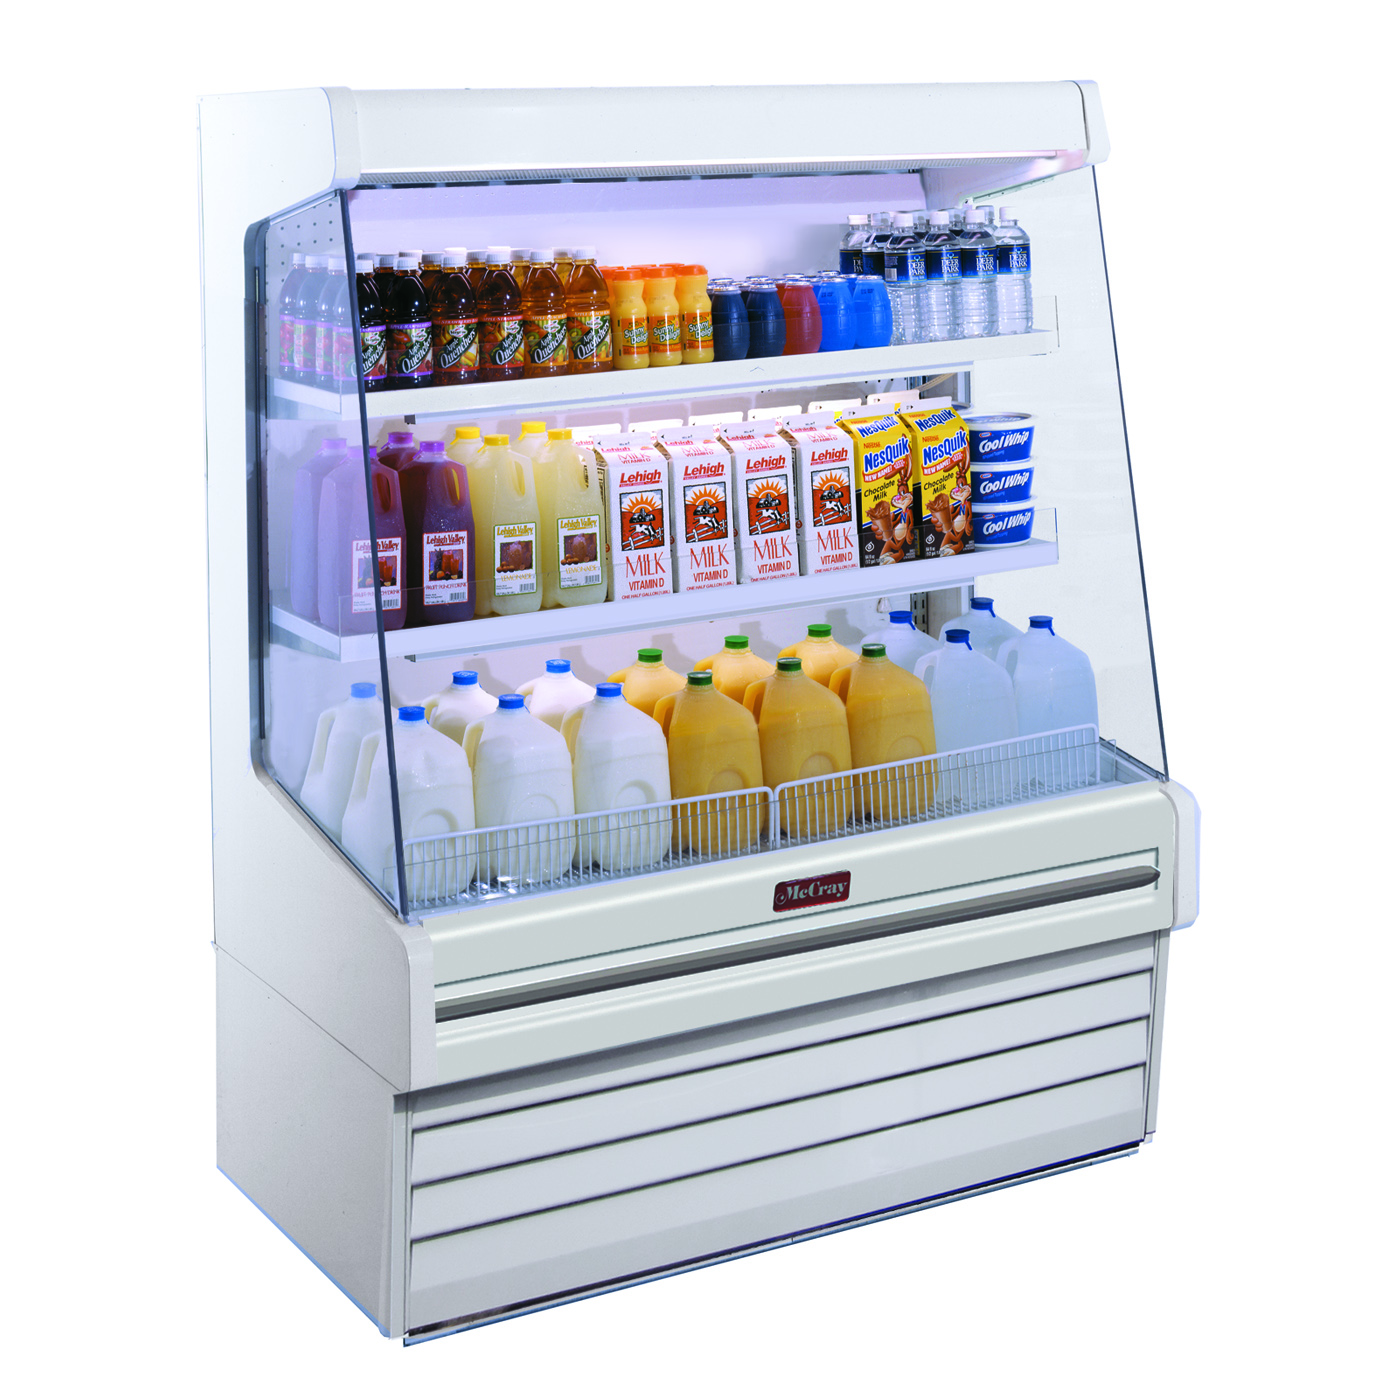 Howard-McCray R-OD30E-4L-LED merchandiser, open refrigerated display